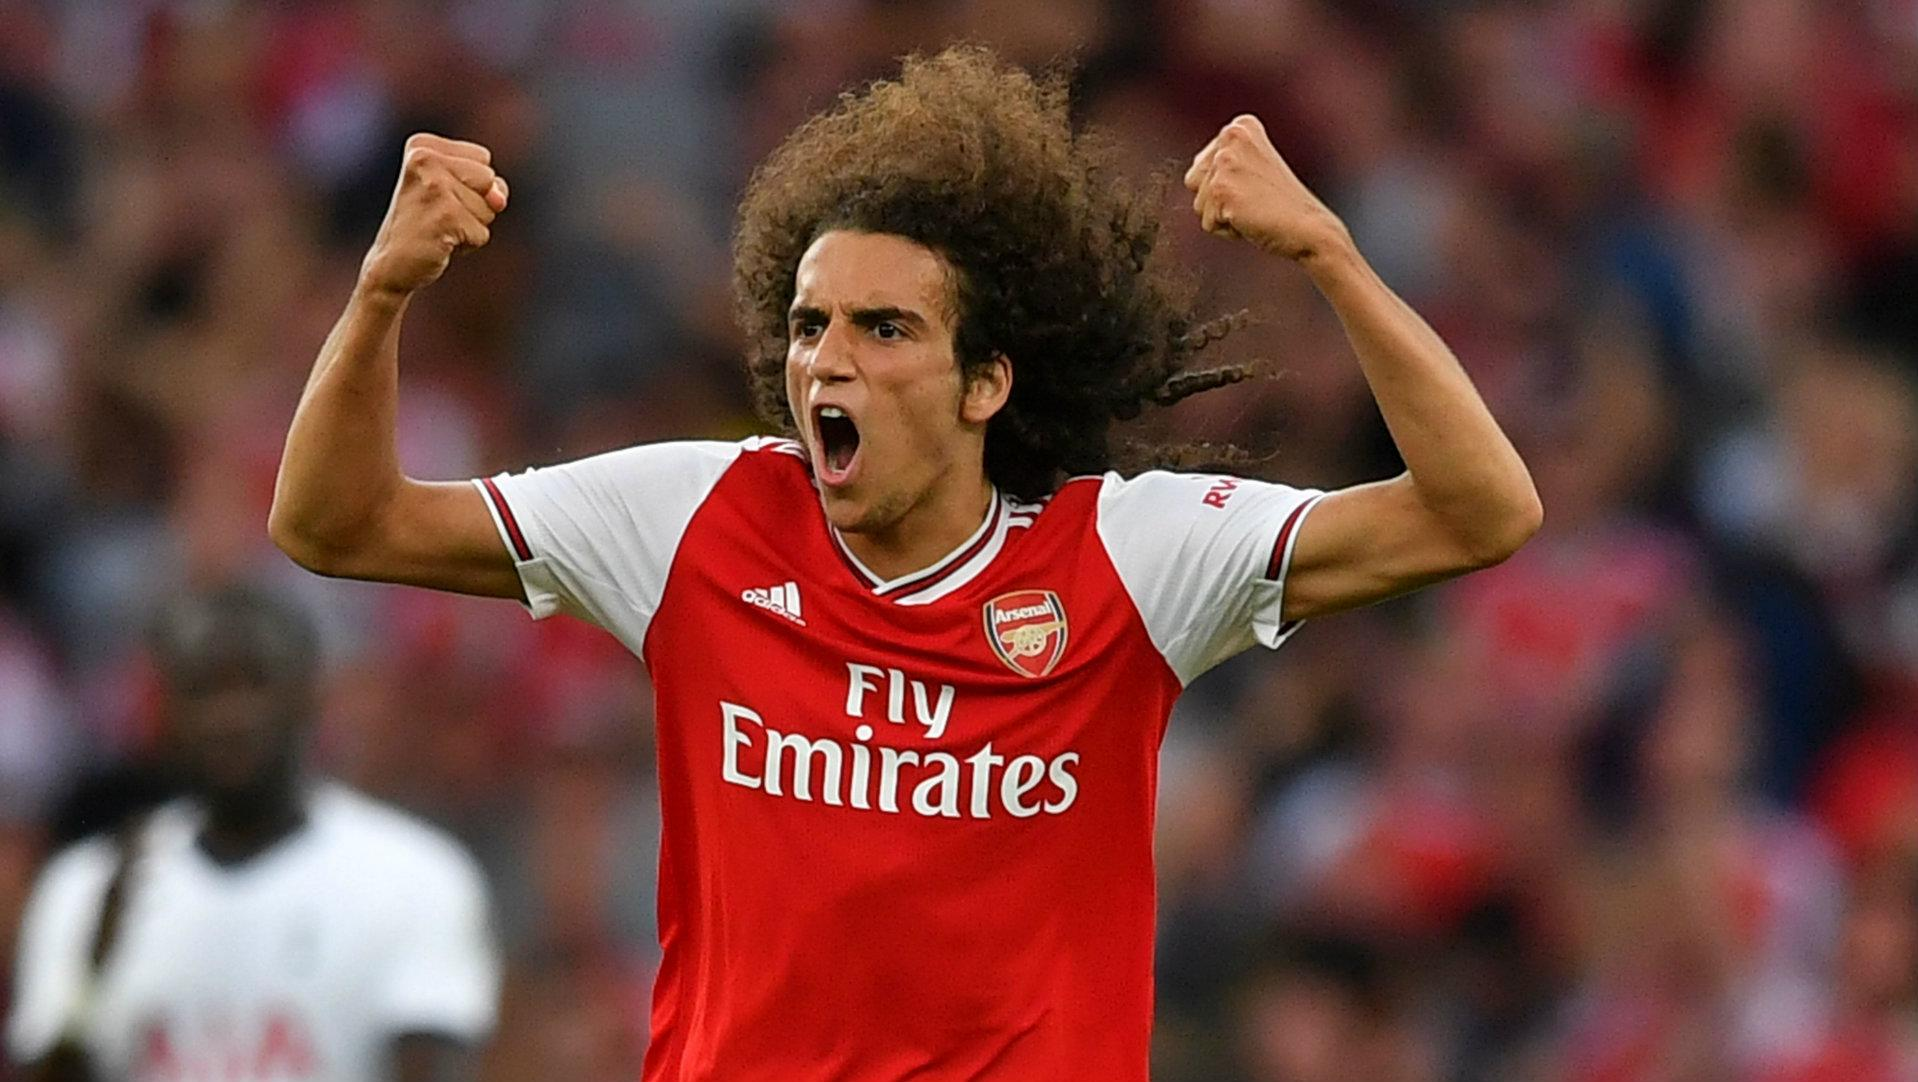 Guendouzi determined to take big chance after 'massive